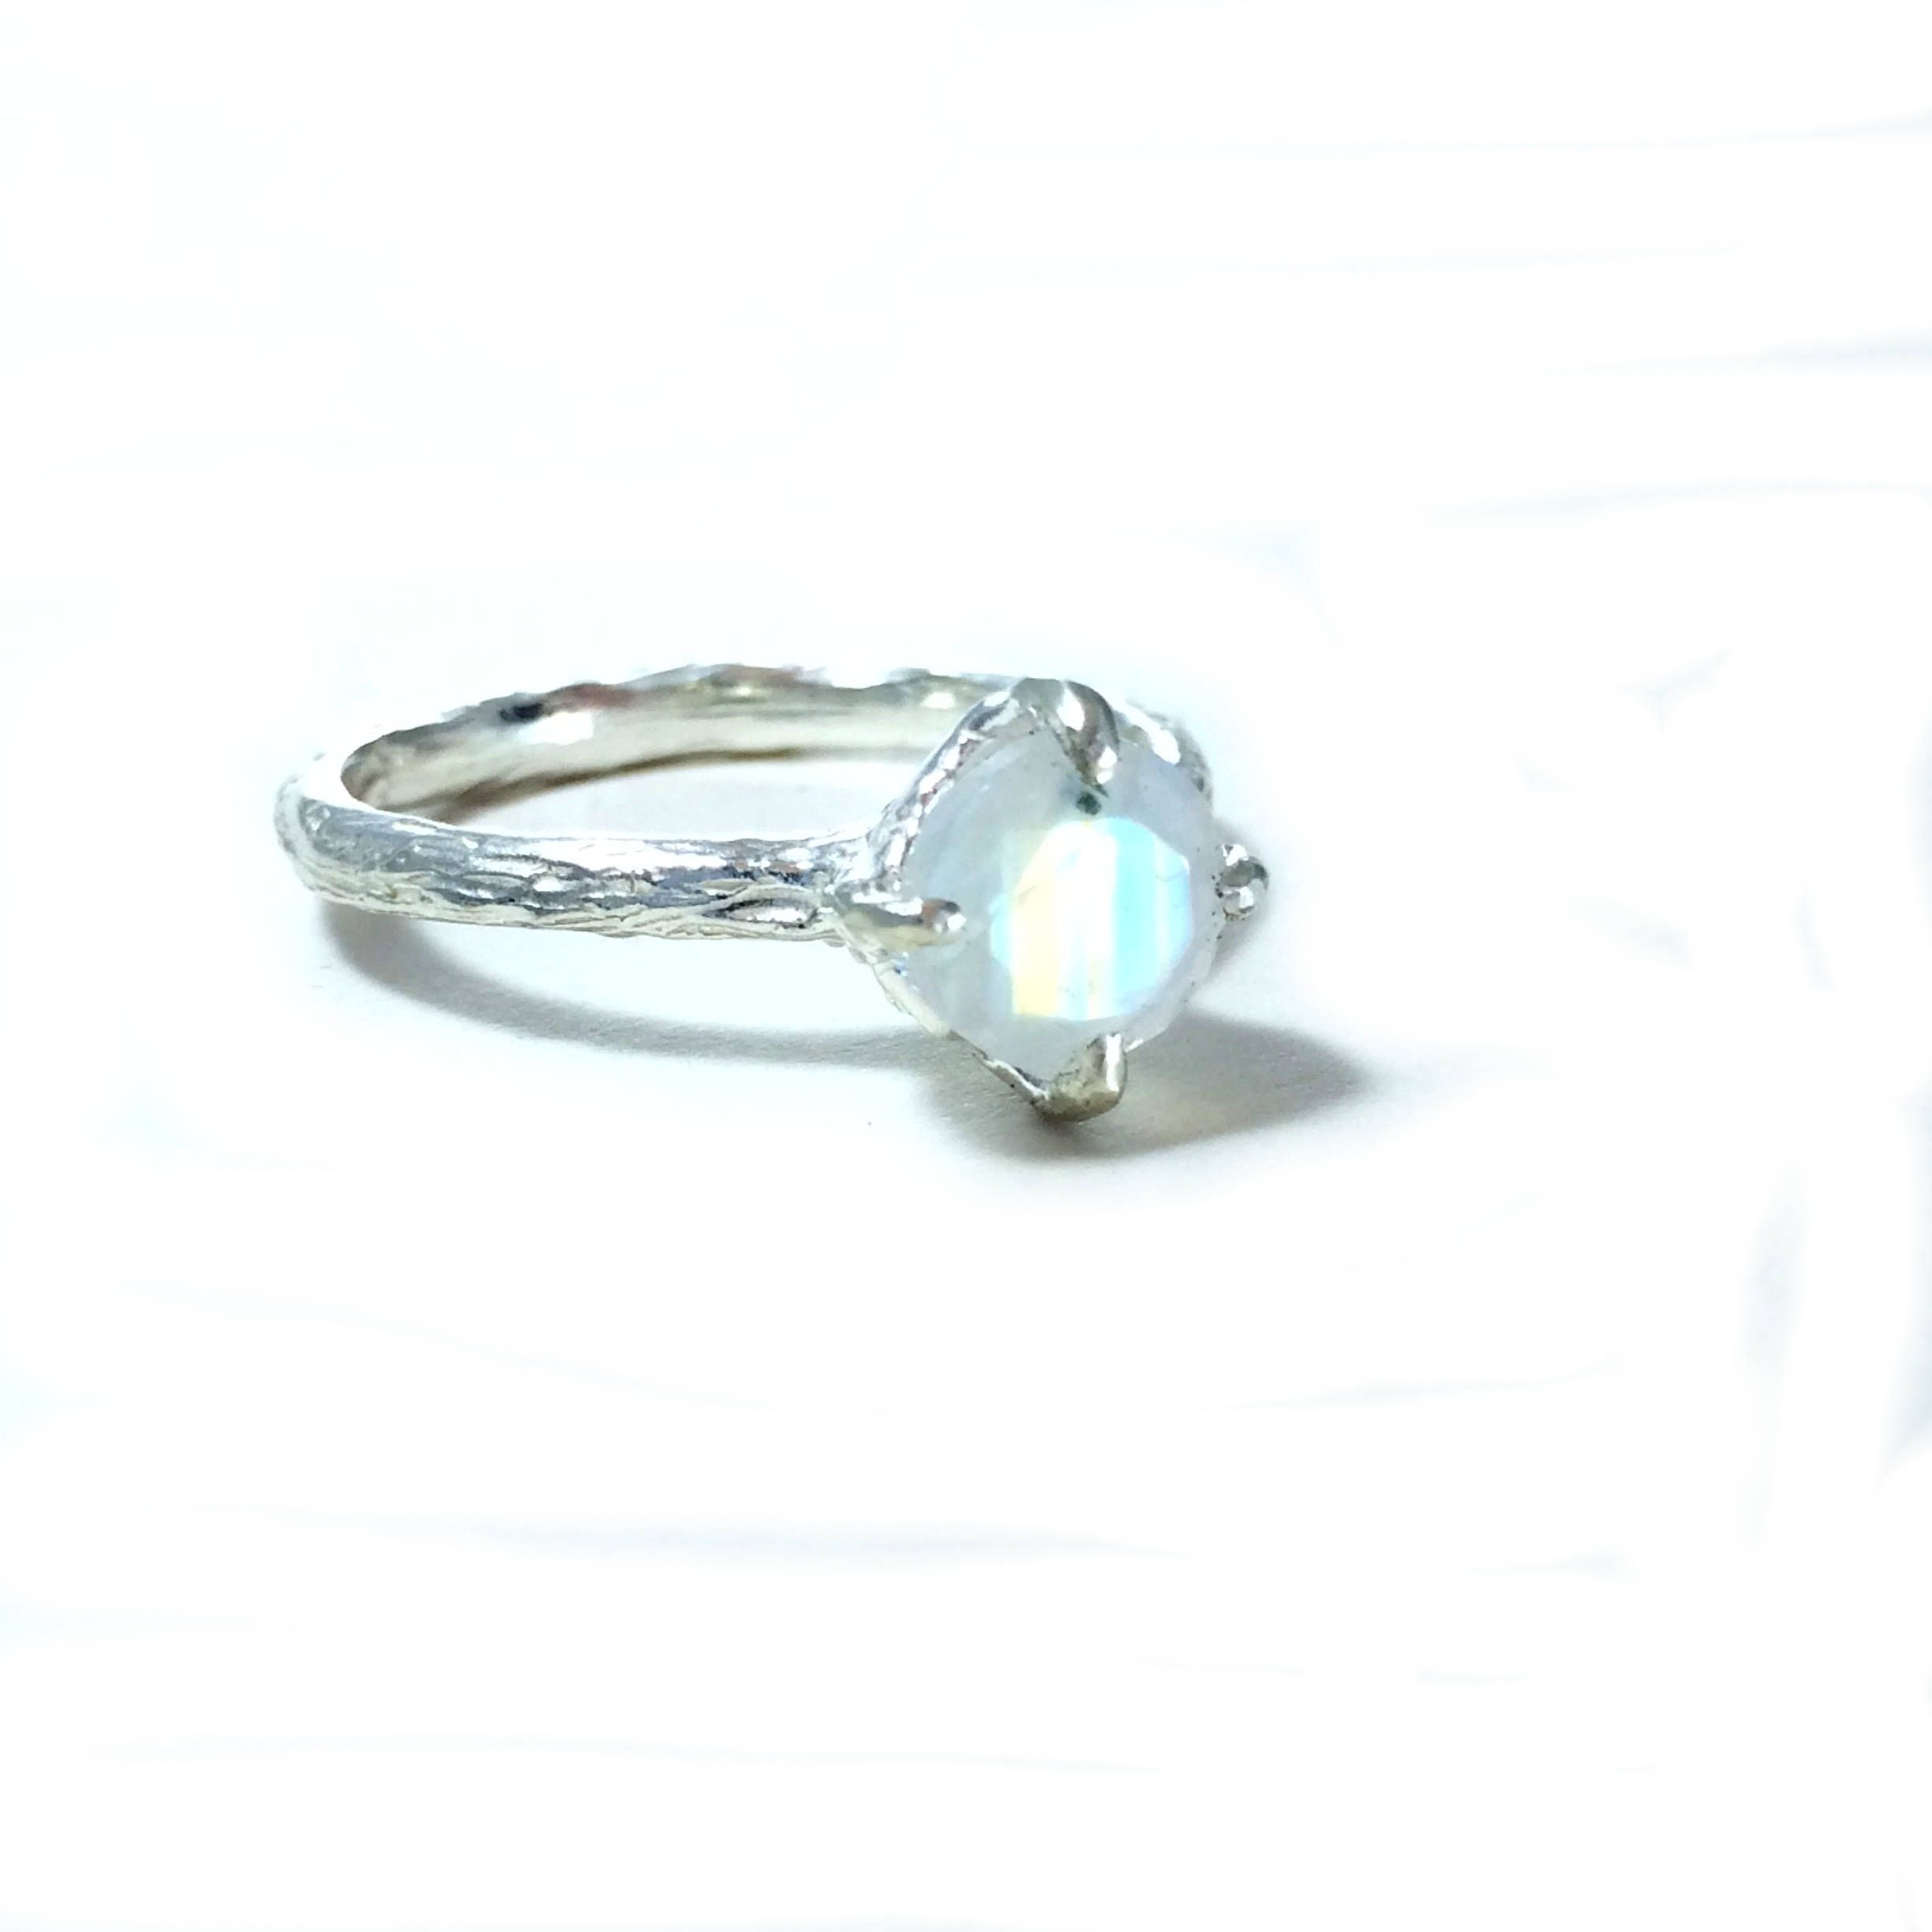 Moonstone engagement ring gemstone twig band nature inspired jewelry